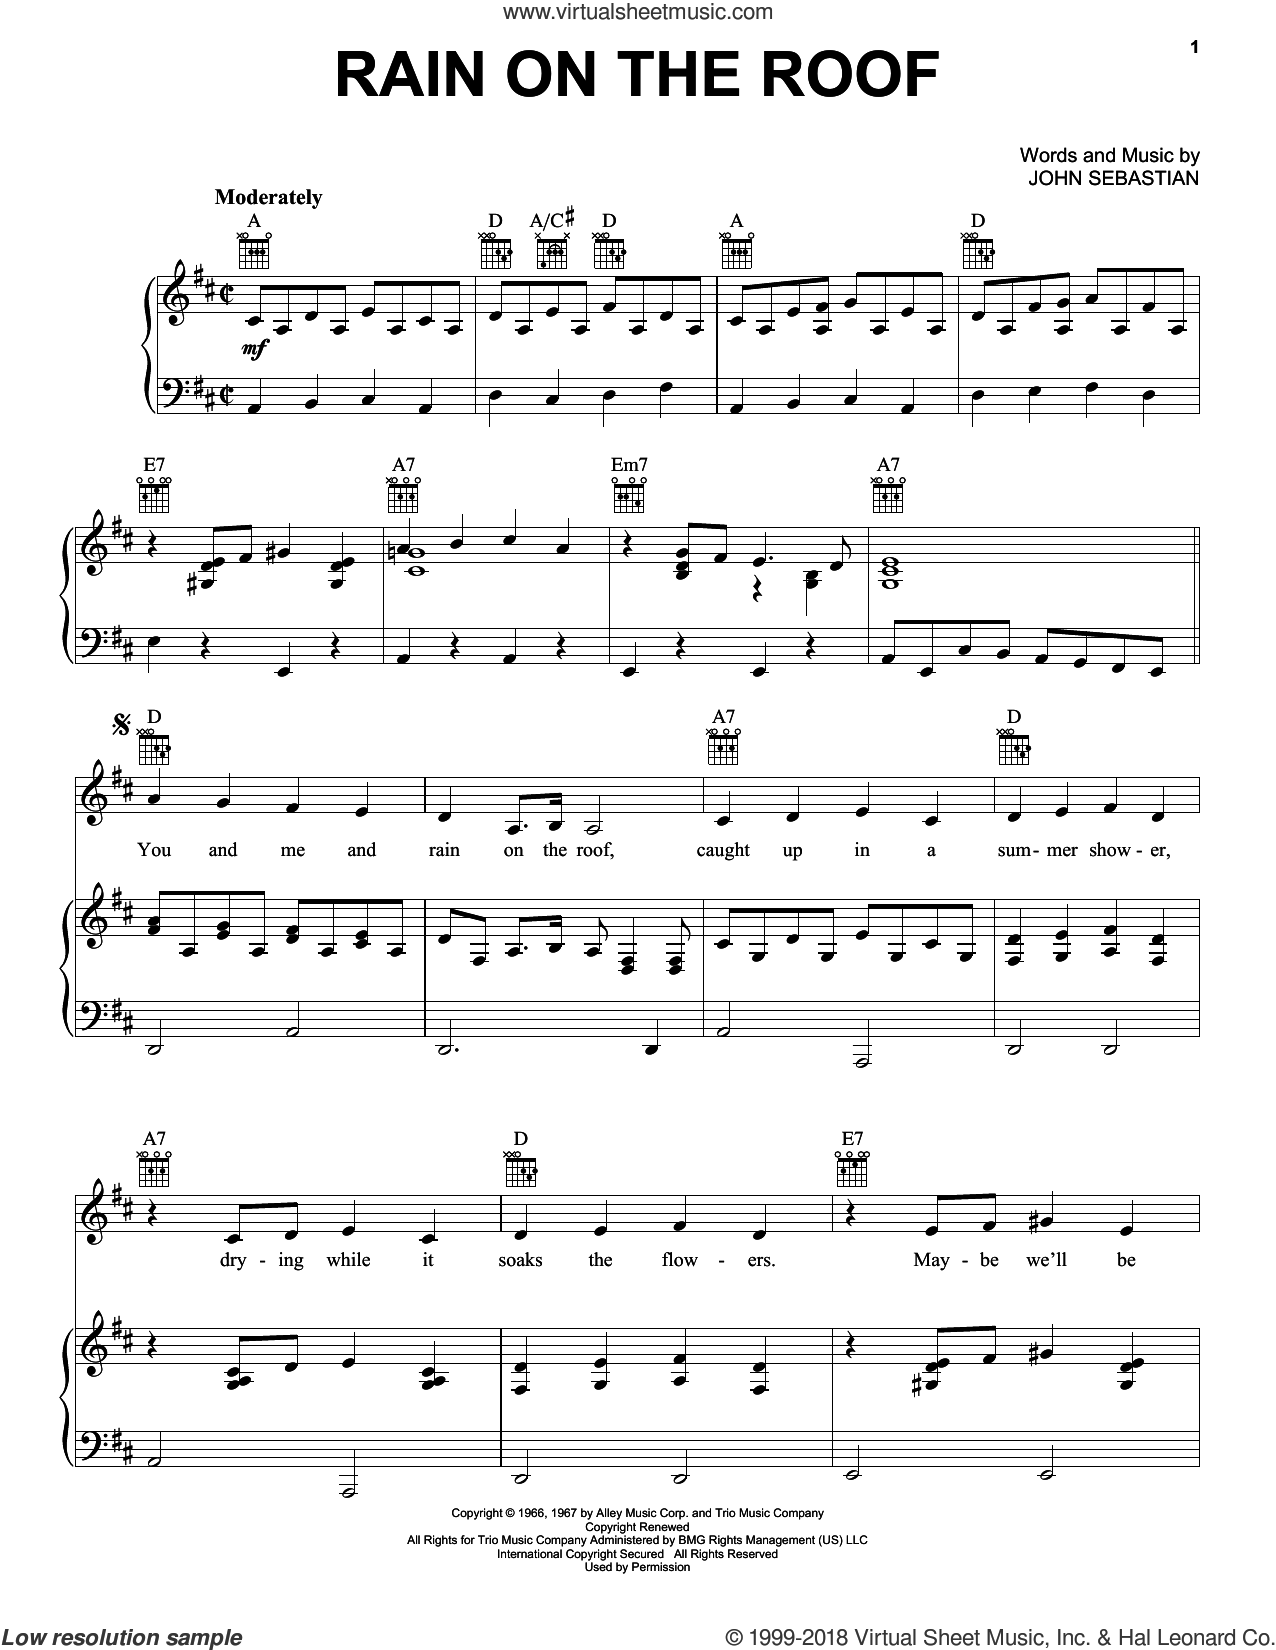 Rain On The Roof sheet music for voice, piano or guitar by Lovin' Spoonful and John Sebastian. Score Image Preview.